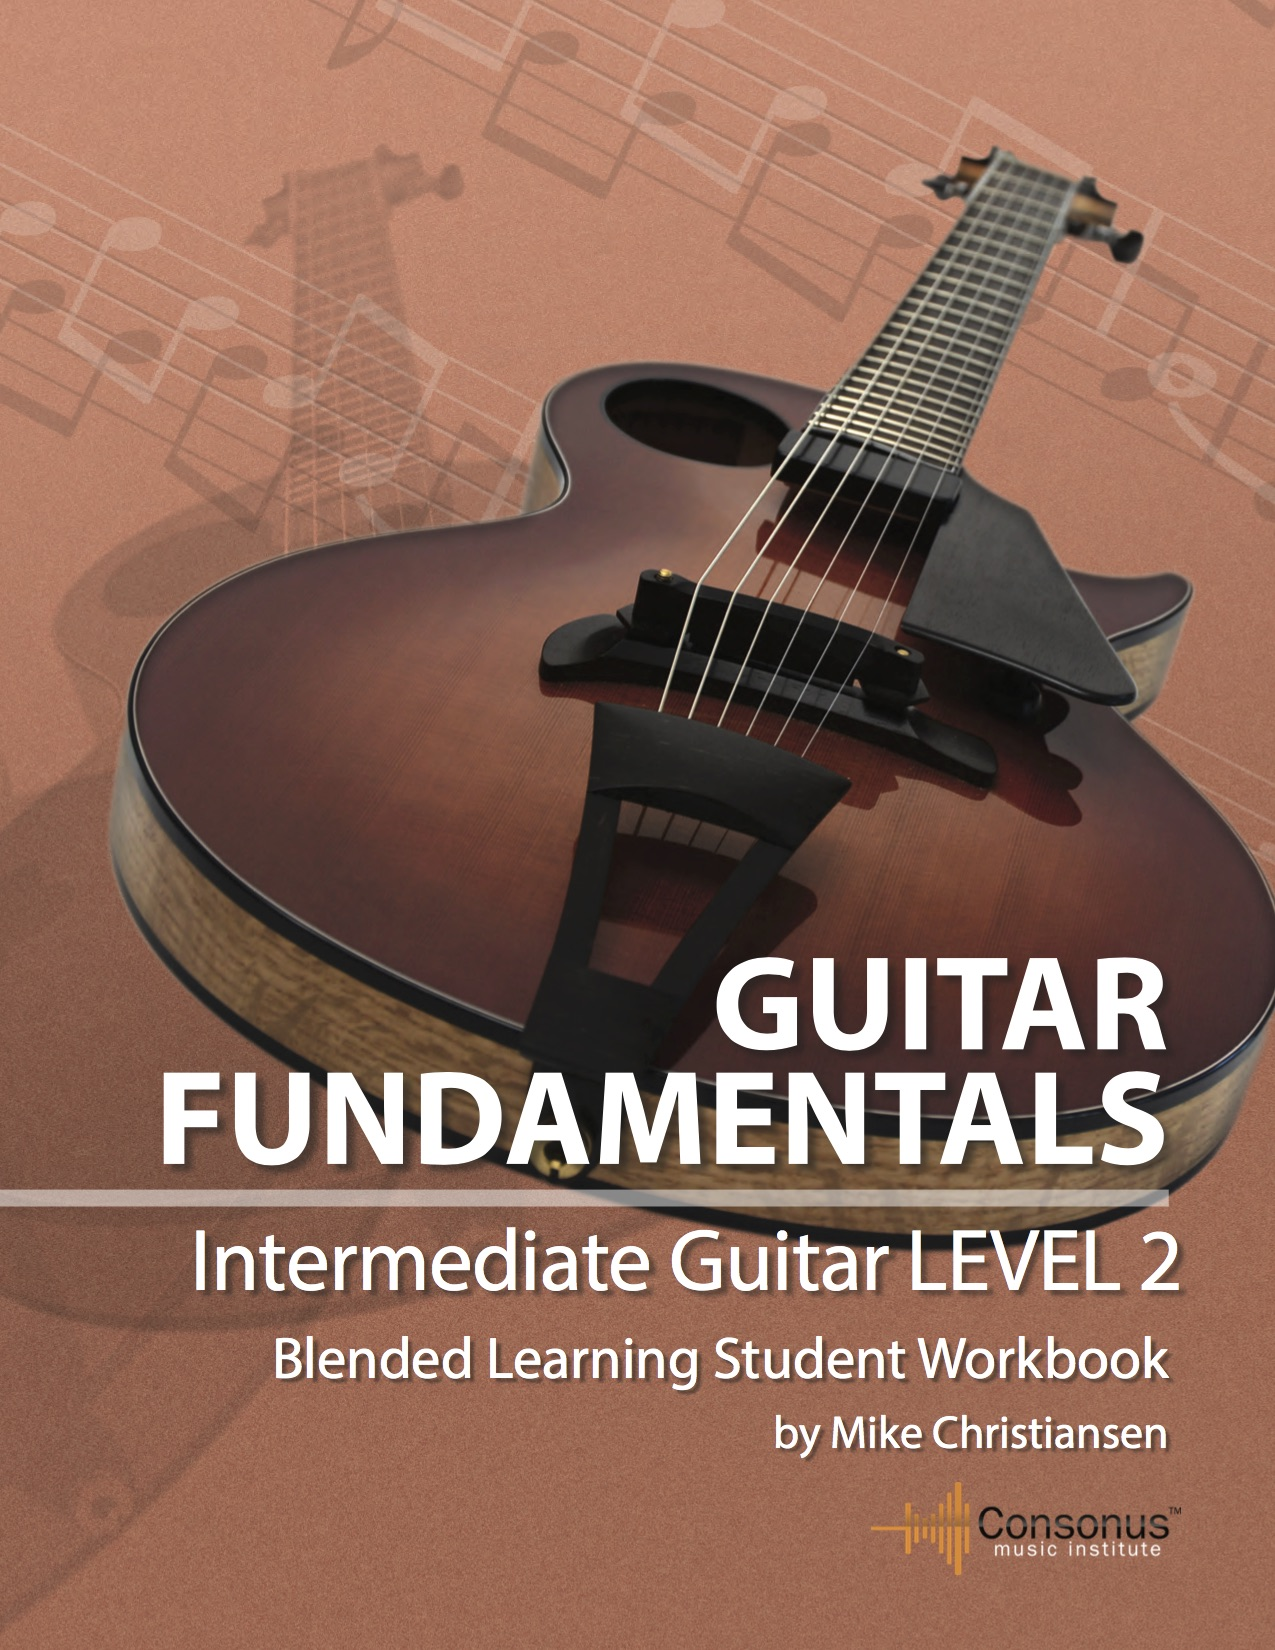 Classroom Guitar Book: Intermediate Level 2 by Mike Christiansen